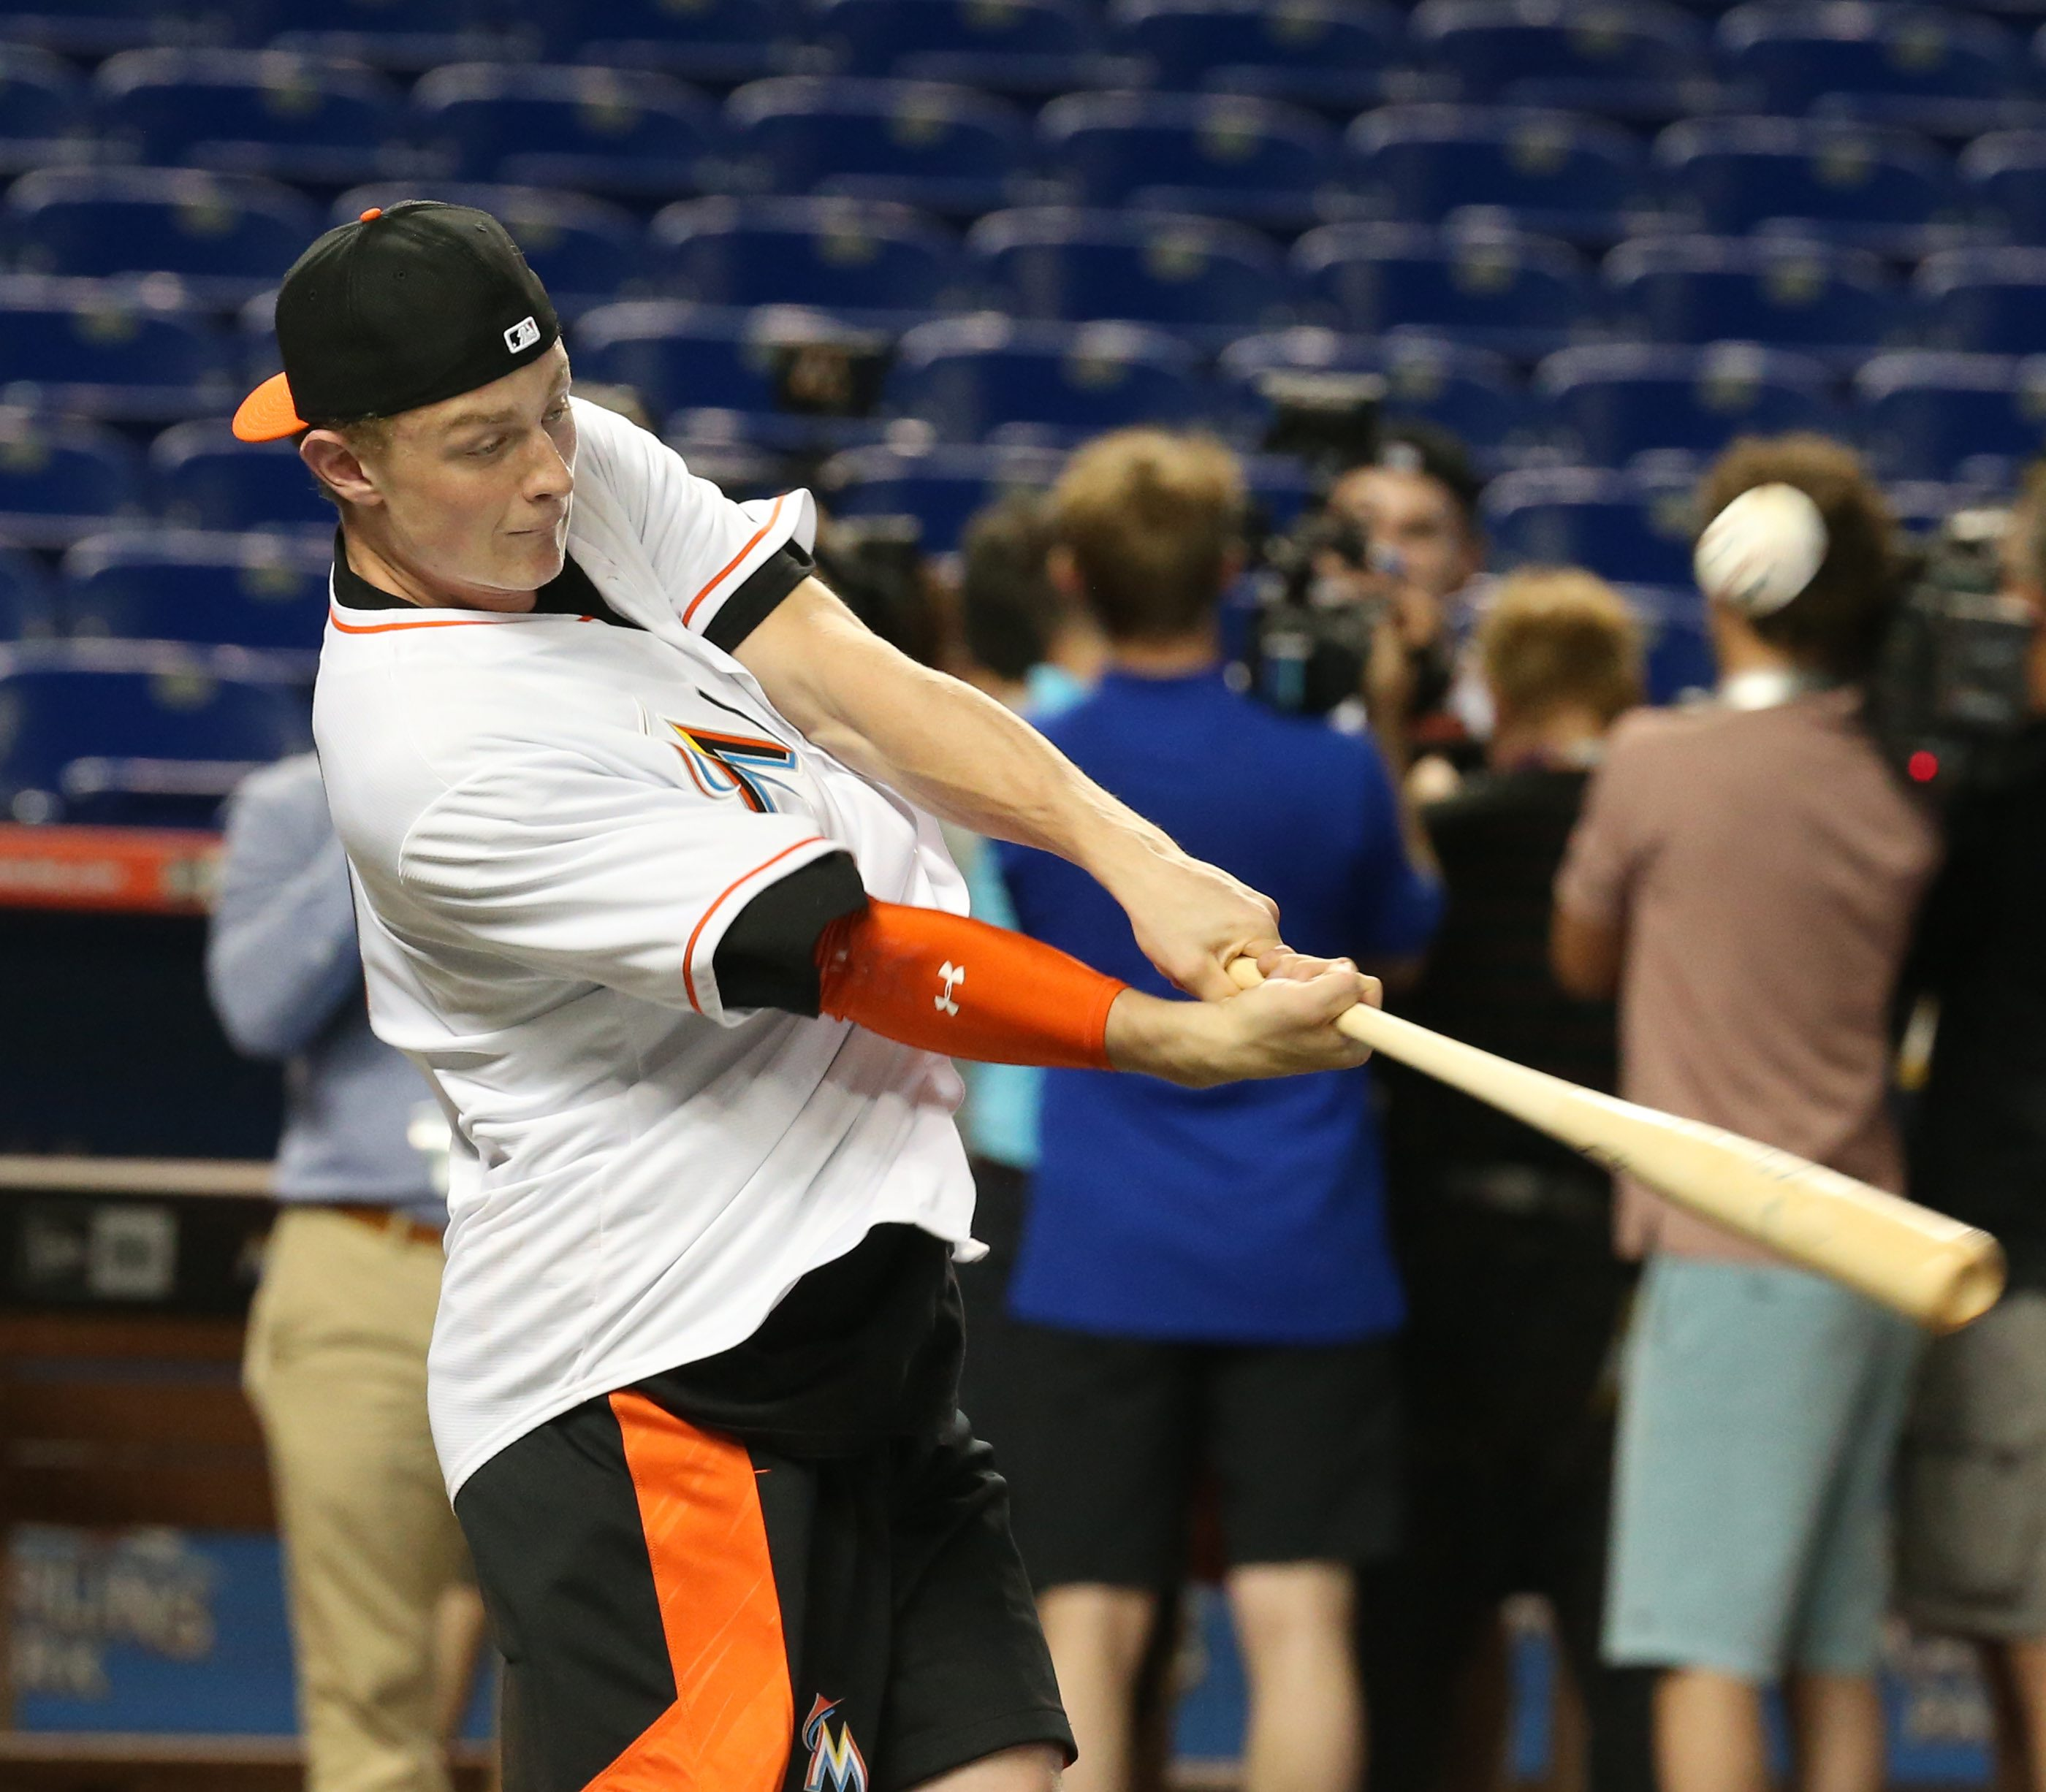 Jack Eichel takes his cuts during batting practice before the Miami Marlins' game against St. Louis on Wednesday in Miami.